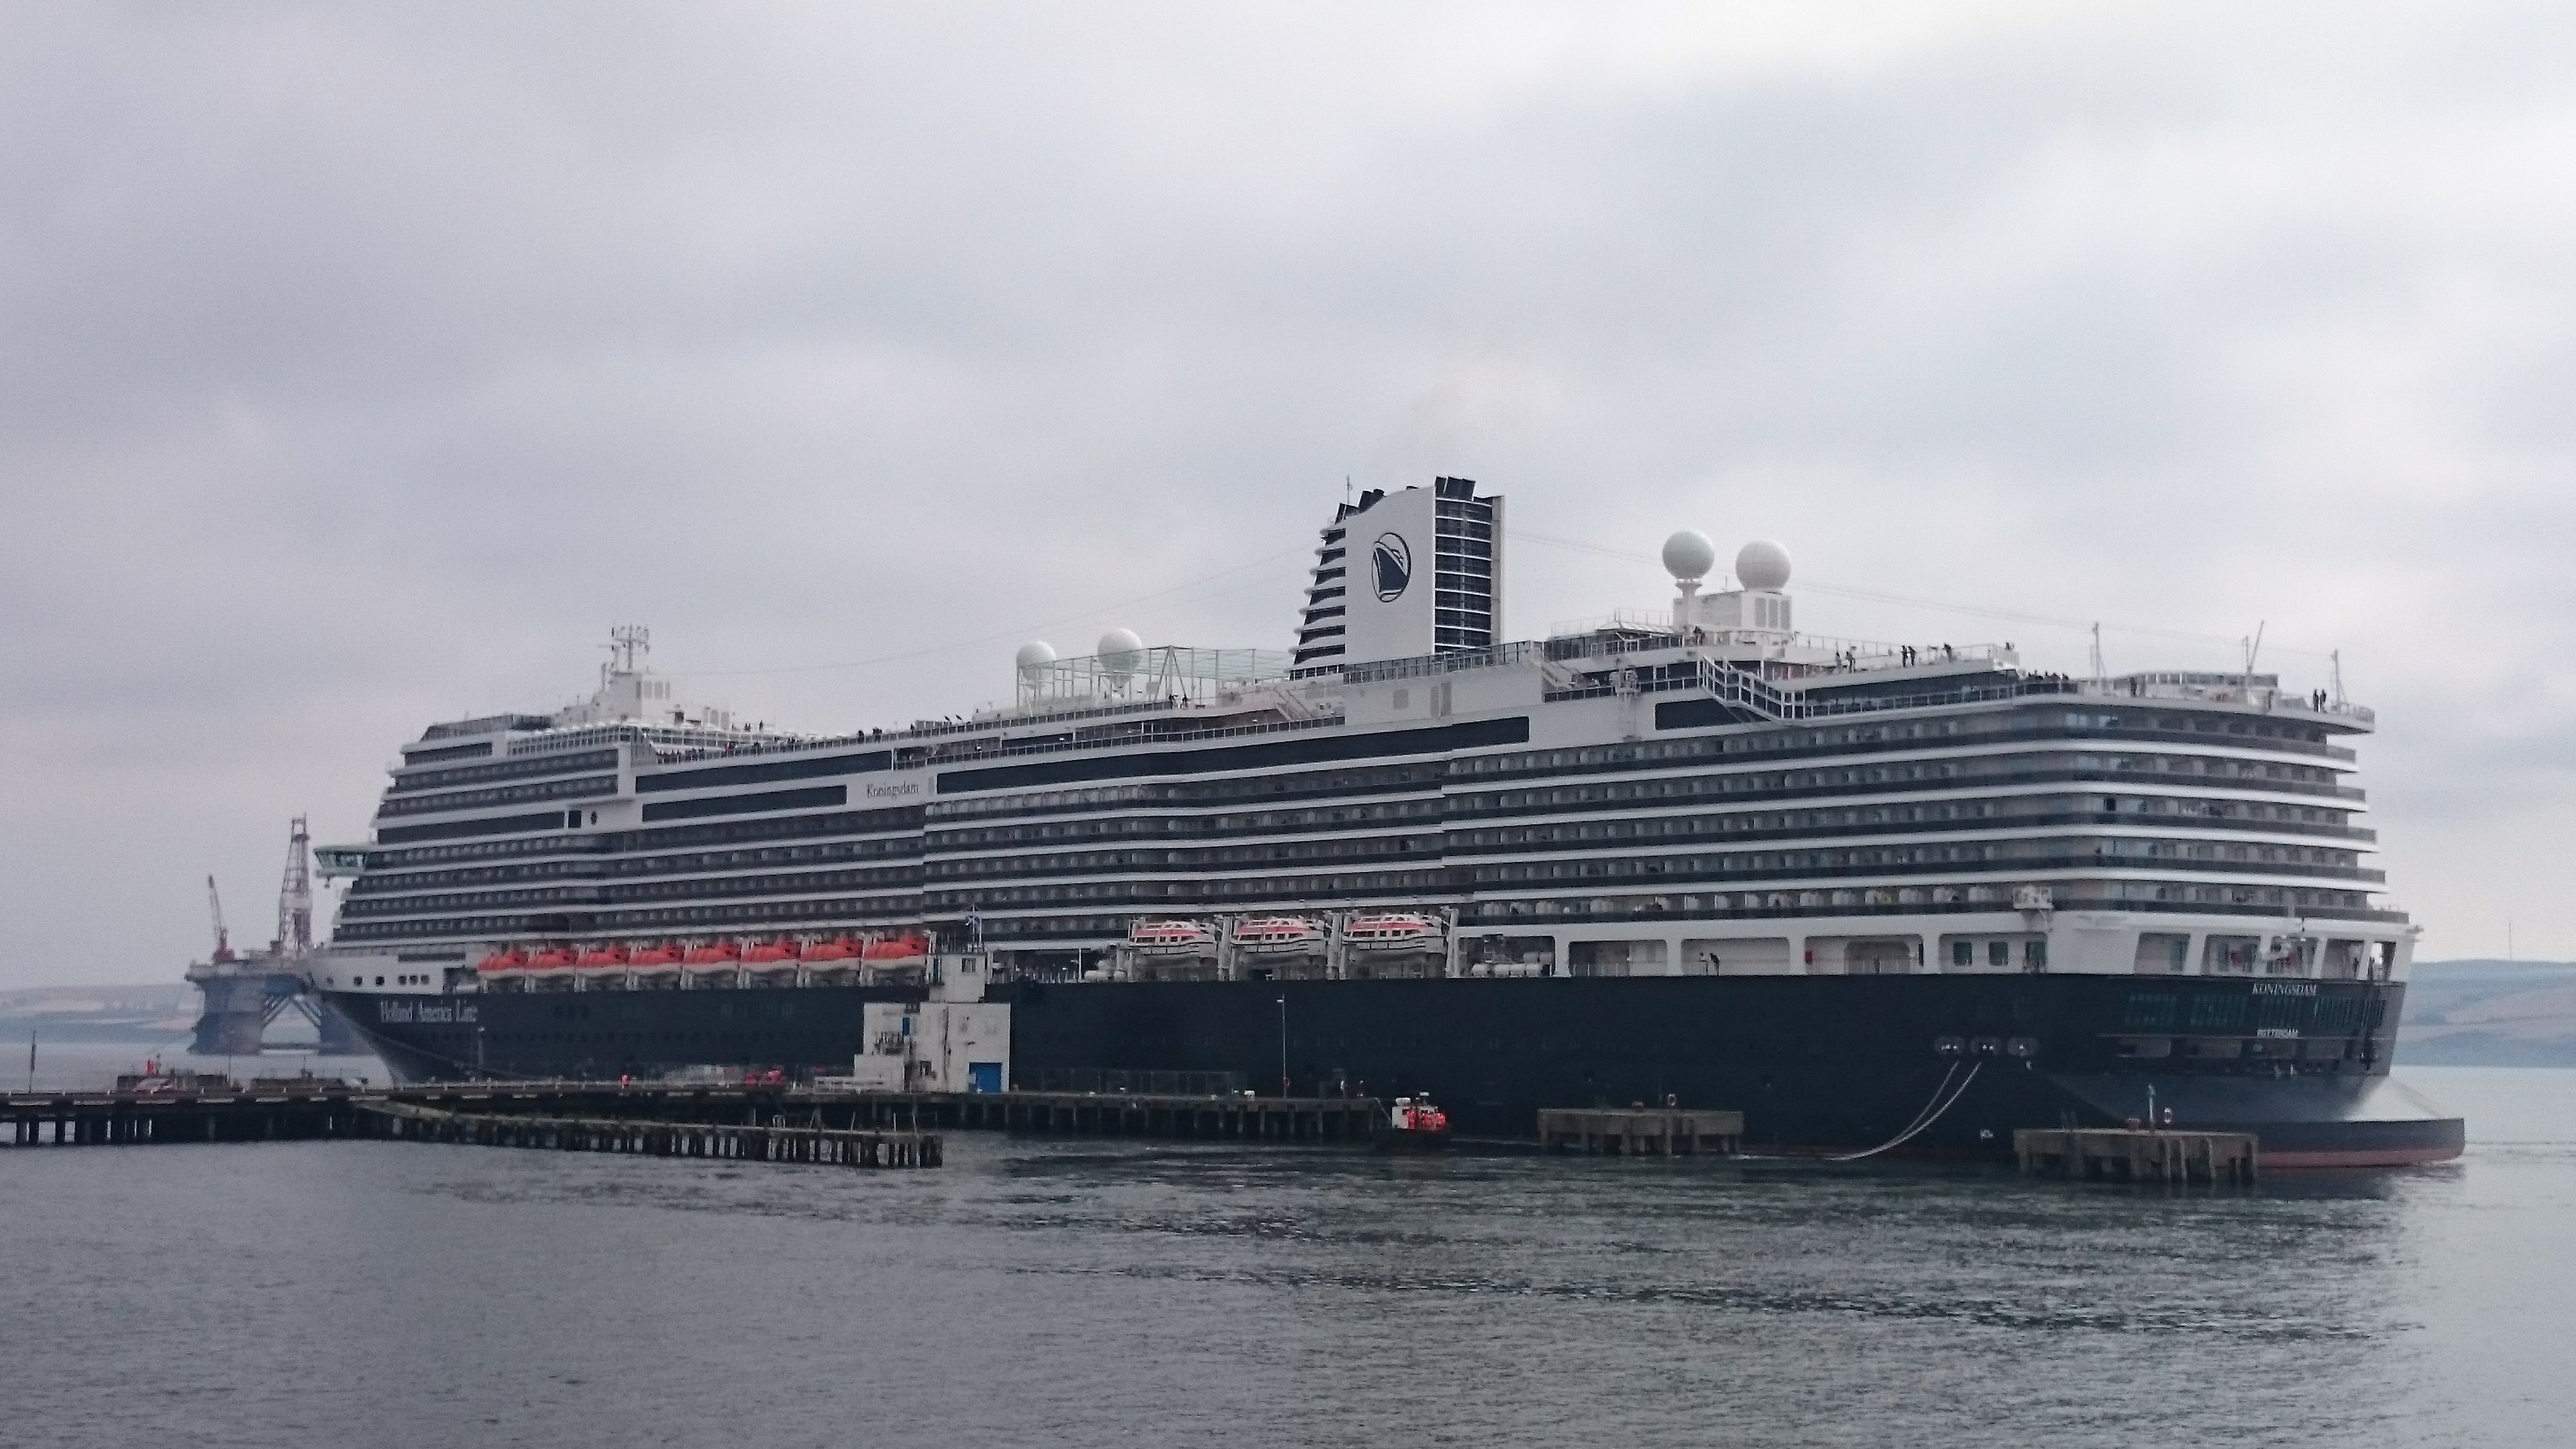 The Koningsdam is the 1,000th cruise liner to visit Invergordon.